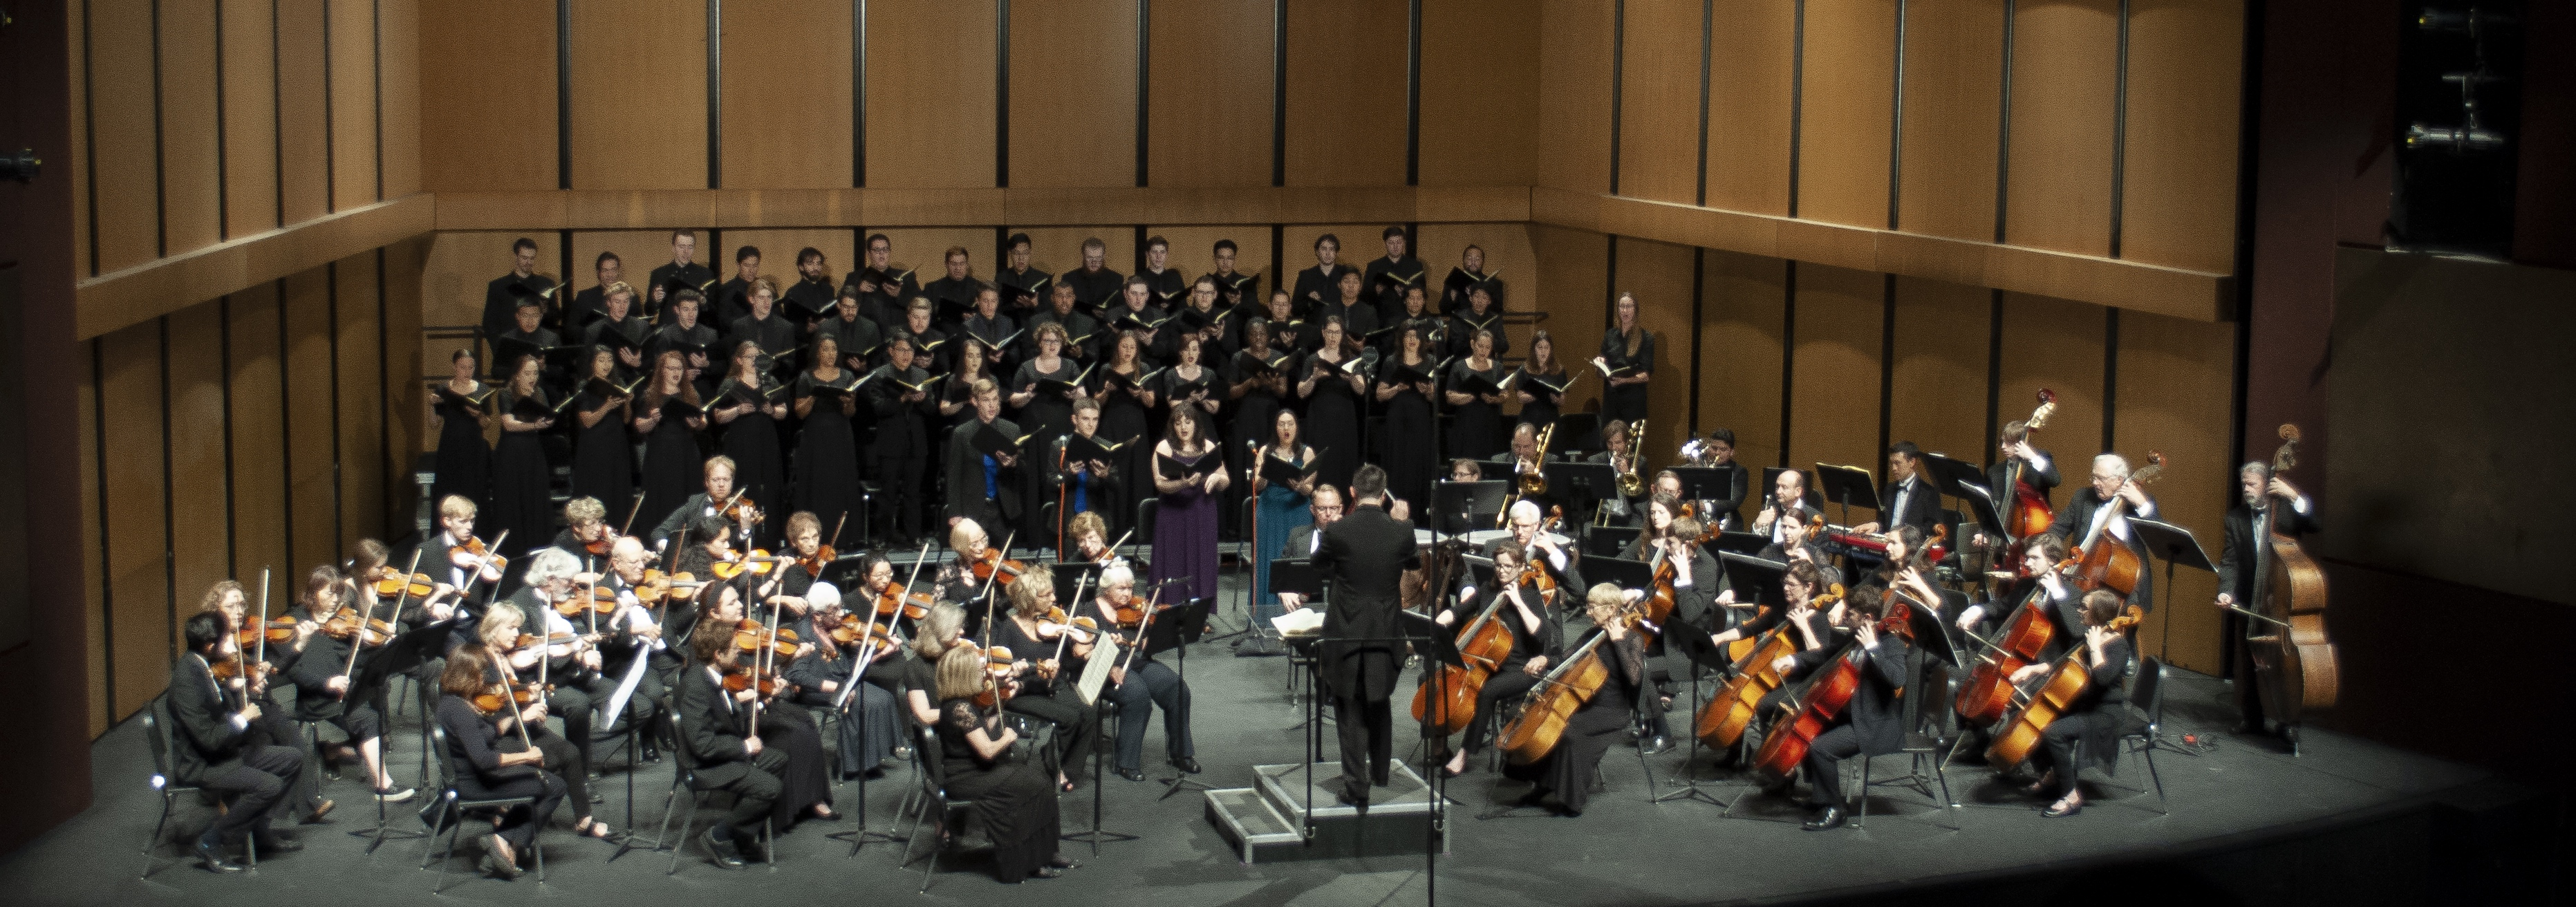 choir and orchestra in concert